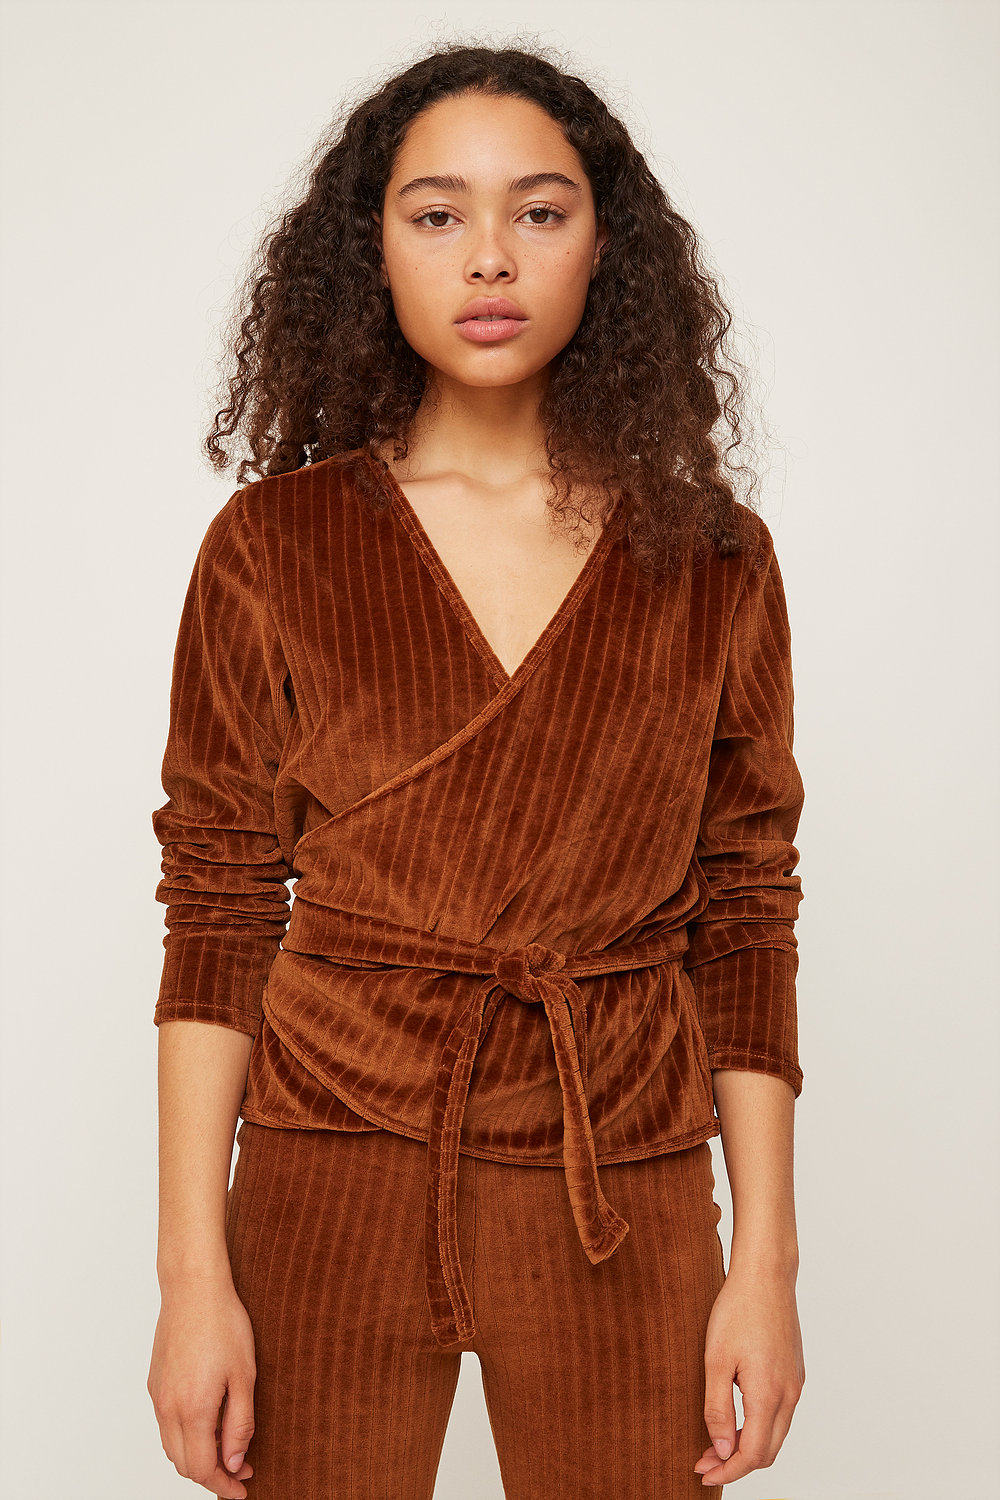 Rita Row Velvet Wrap Shirt in Brown